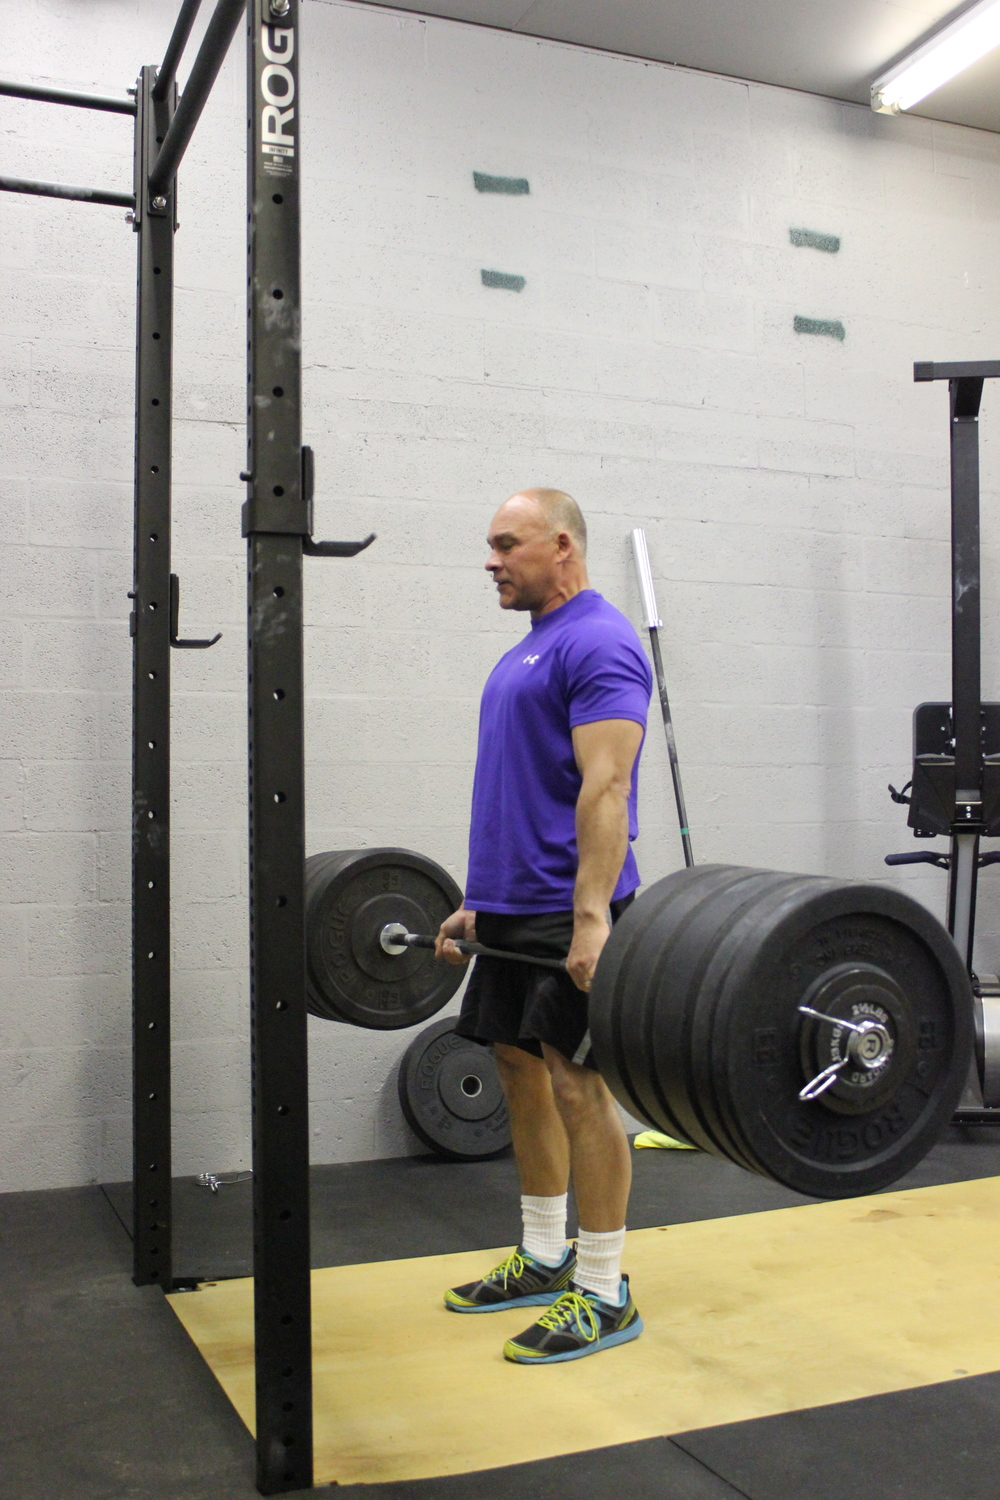 See Coons lift  See Coons PB with a 400 pound deadlift!